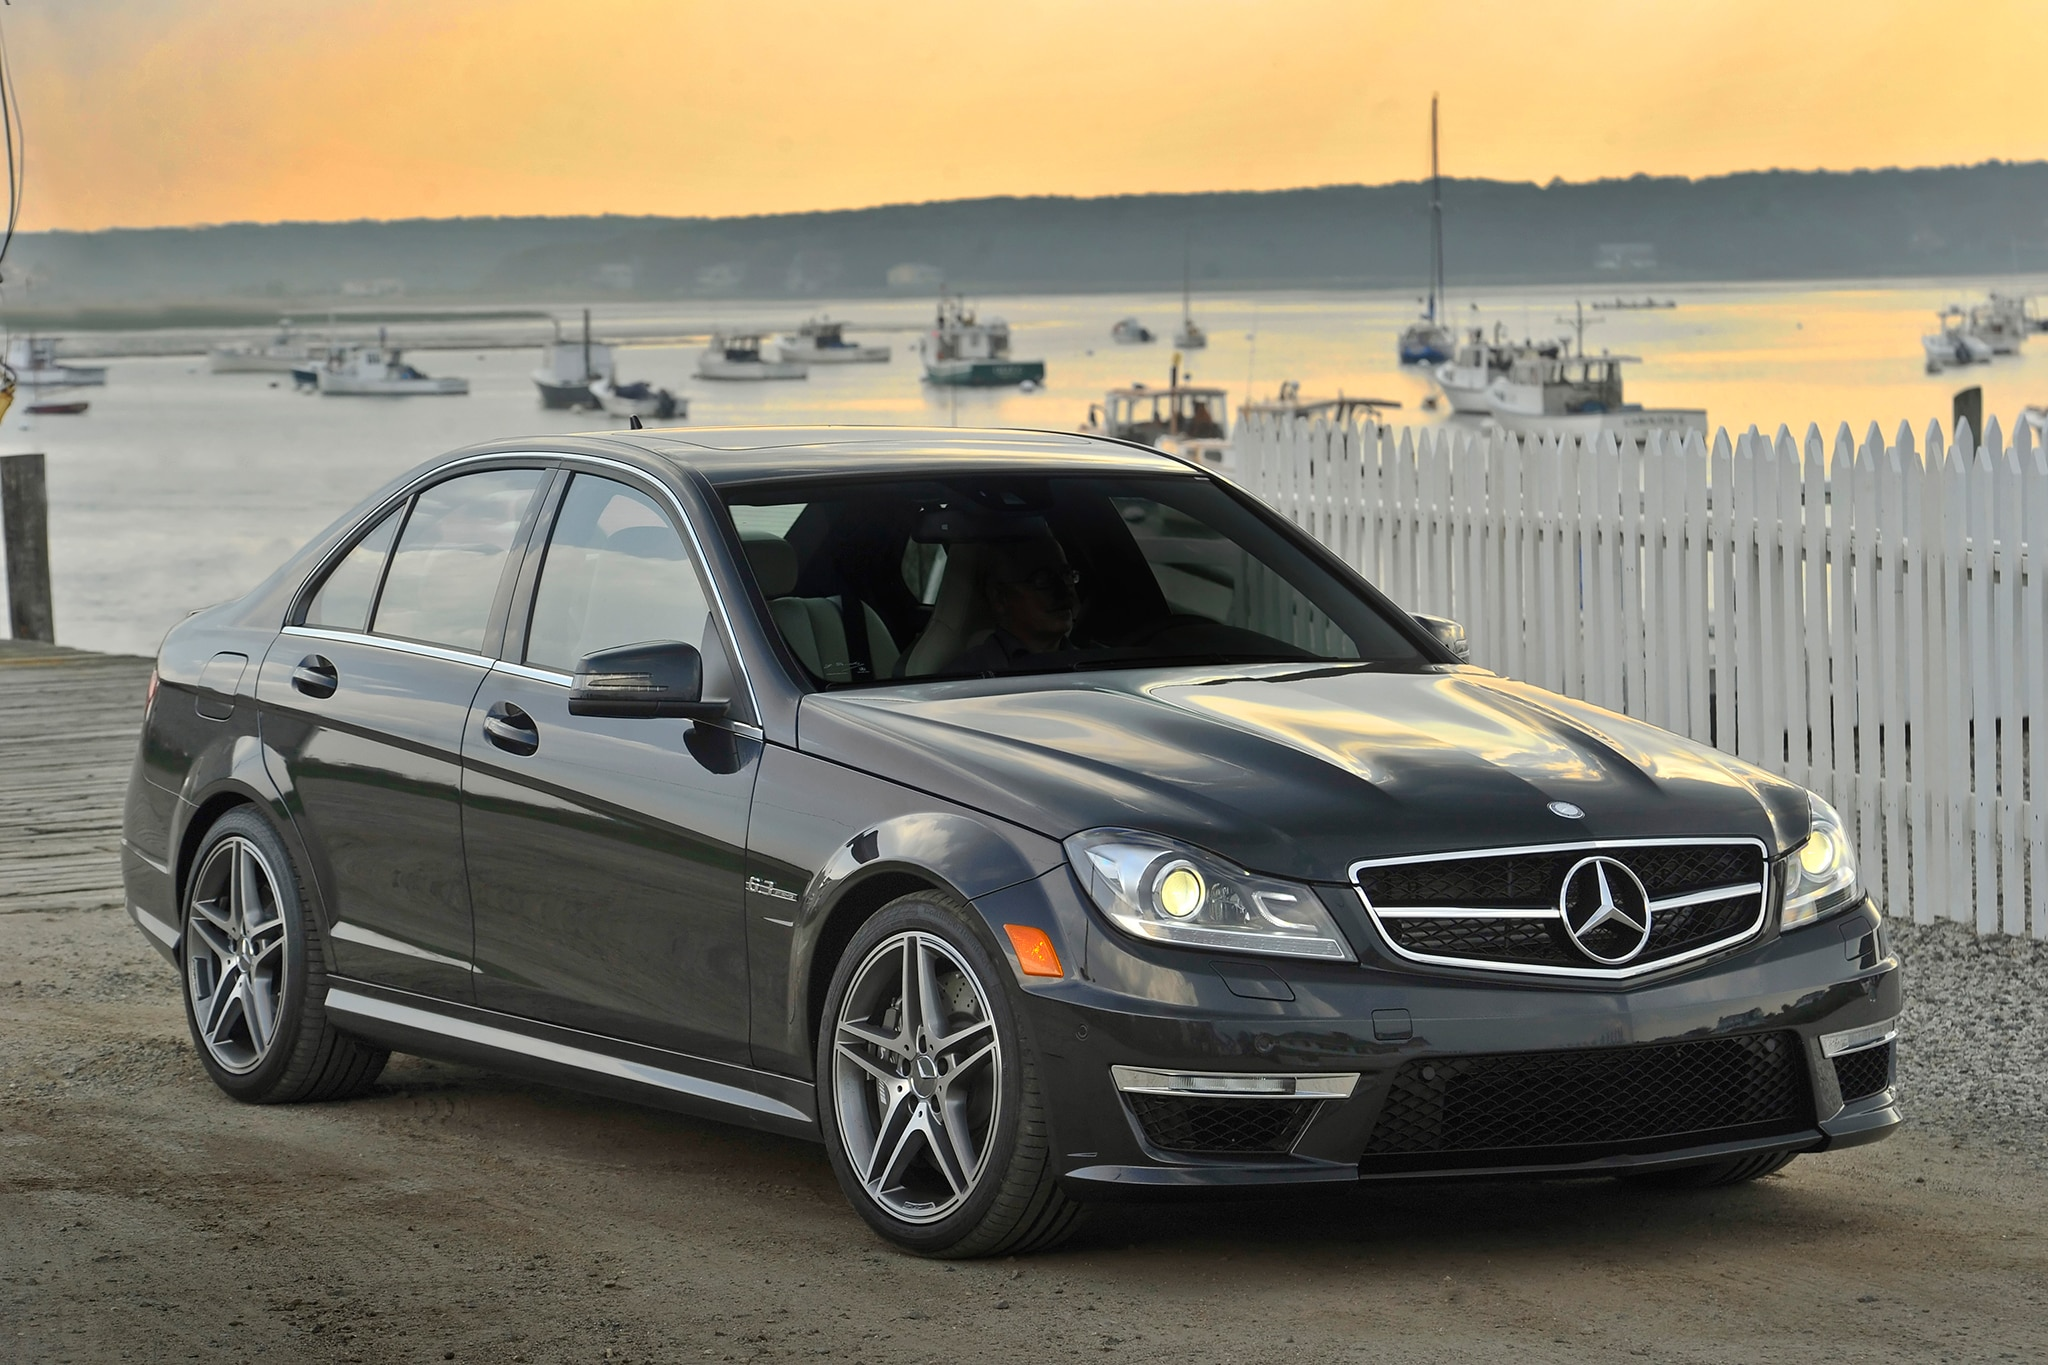 Mercedes benz reveals new 2013 c class sport package with for Mercedes benz c250 cargurus